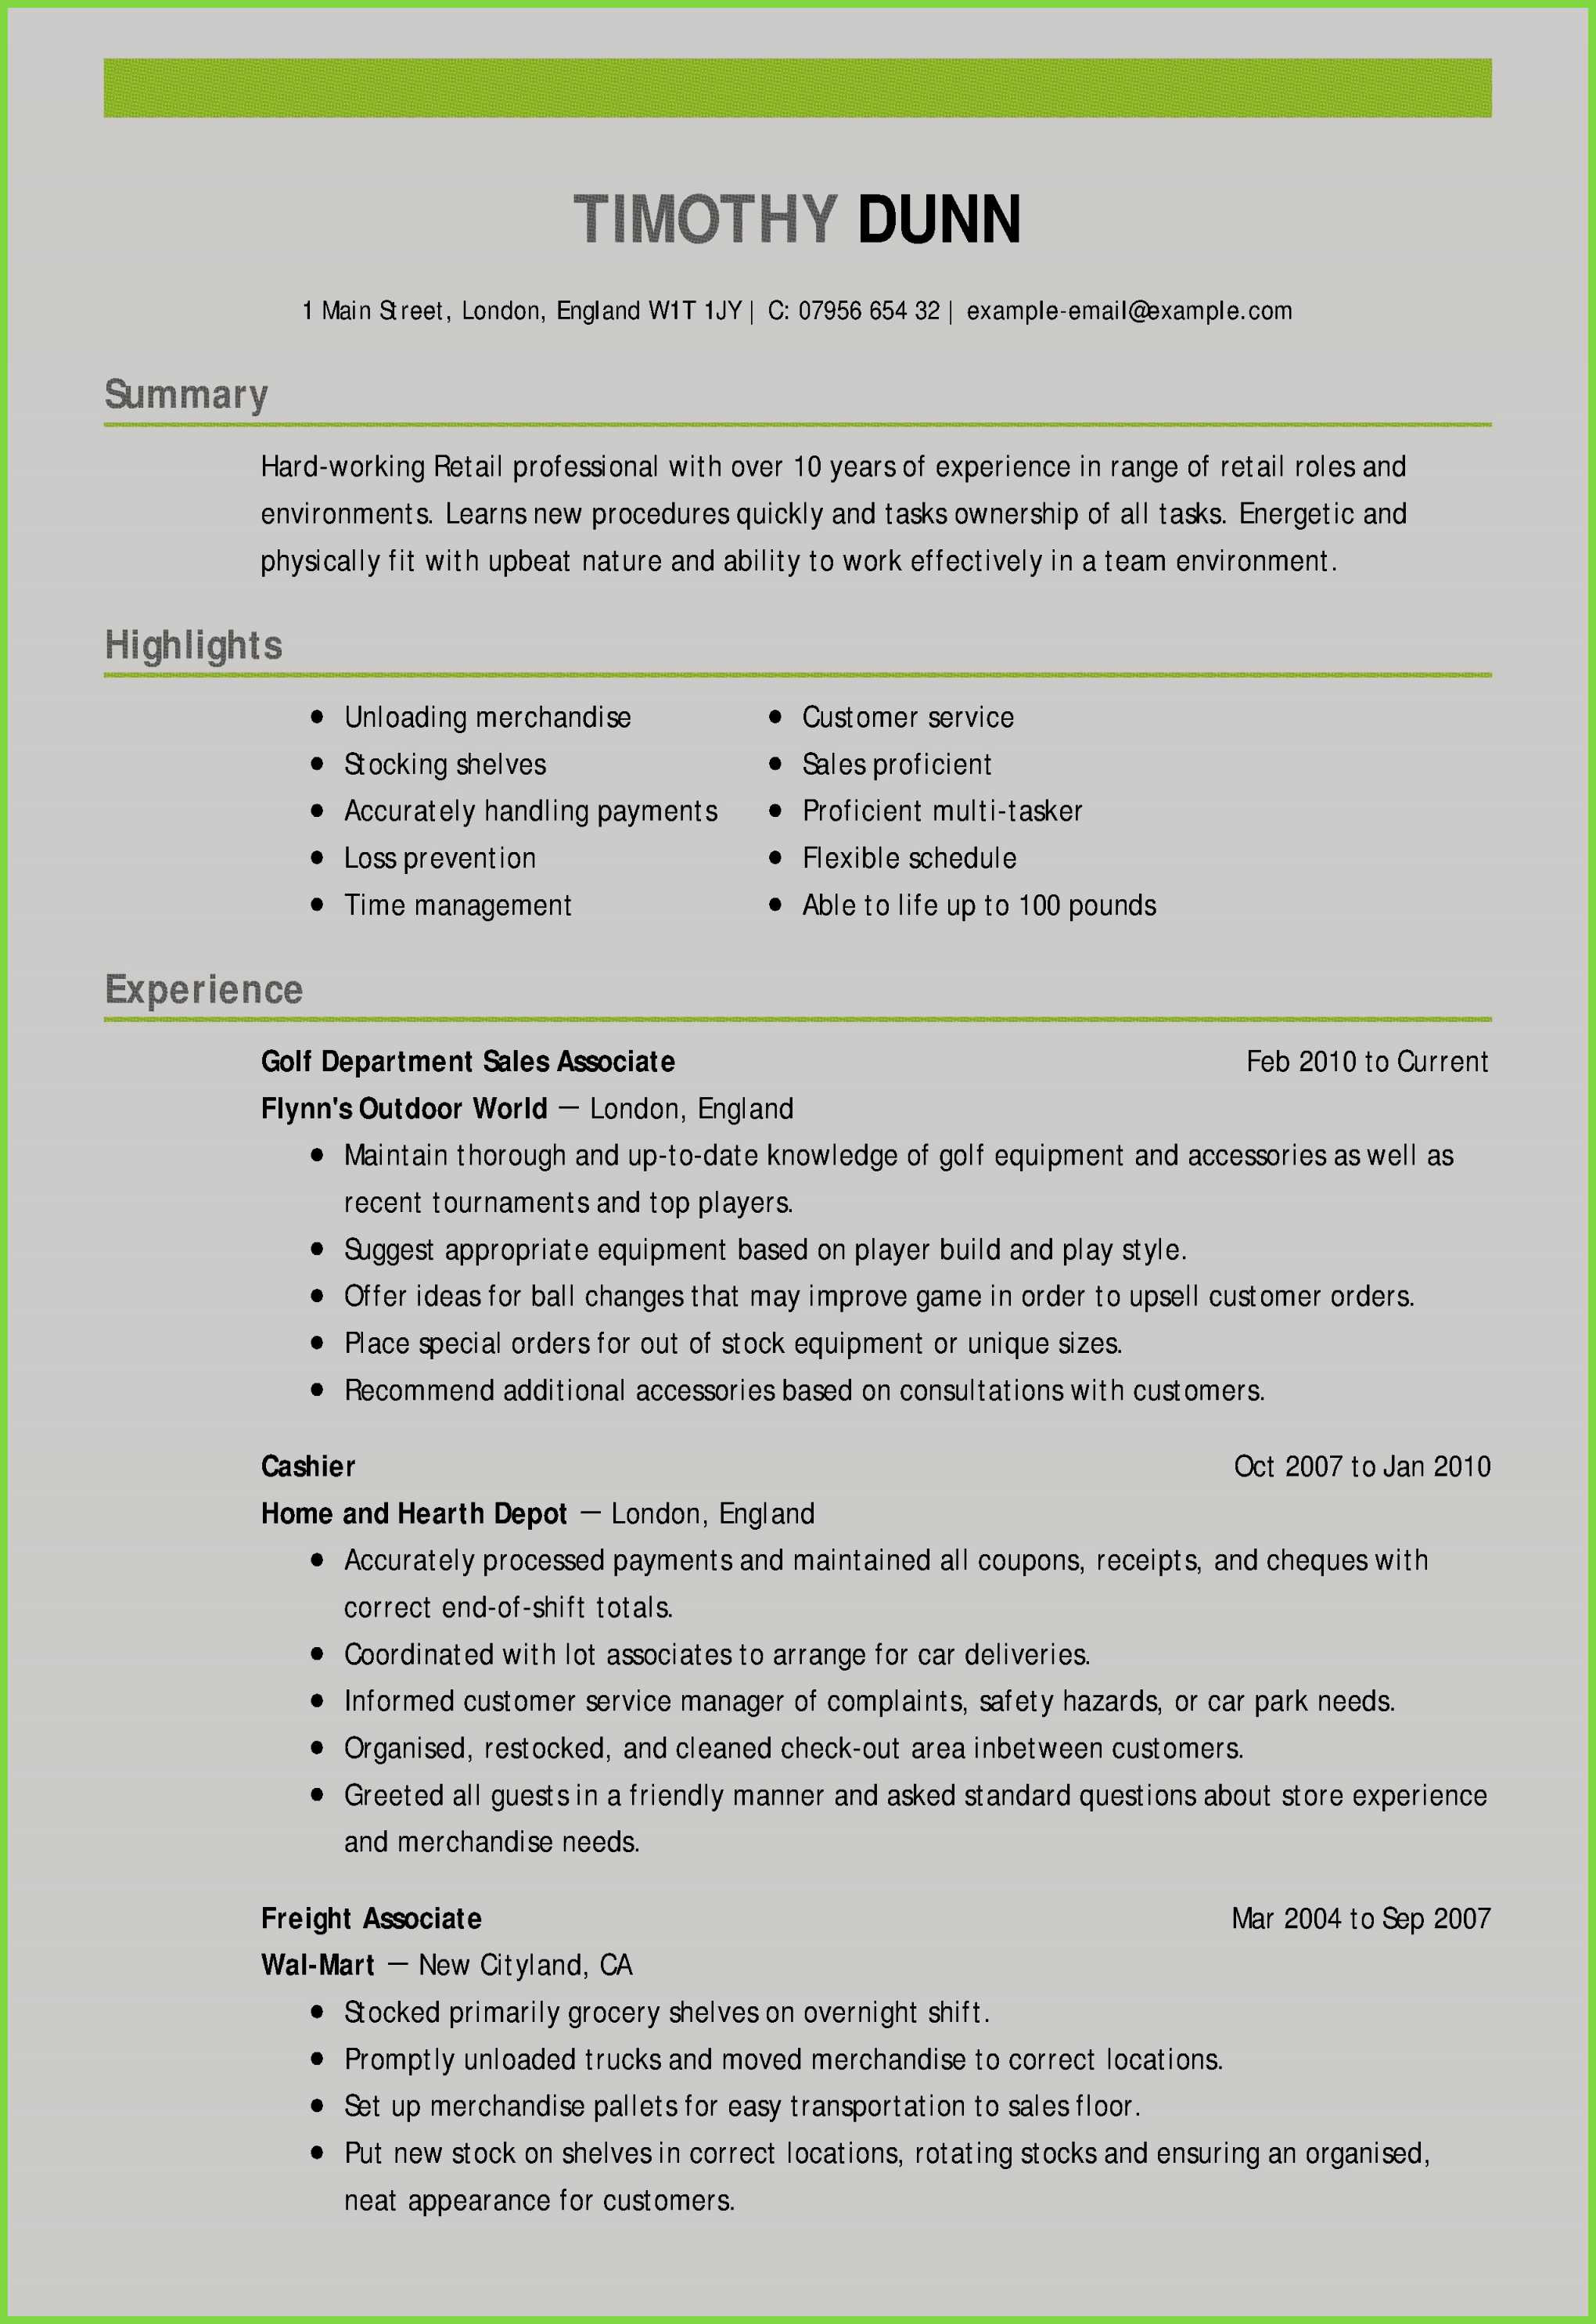 Resume for Marketing Job - Resume Templates Sales